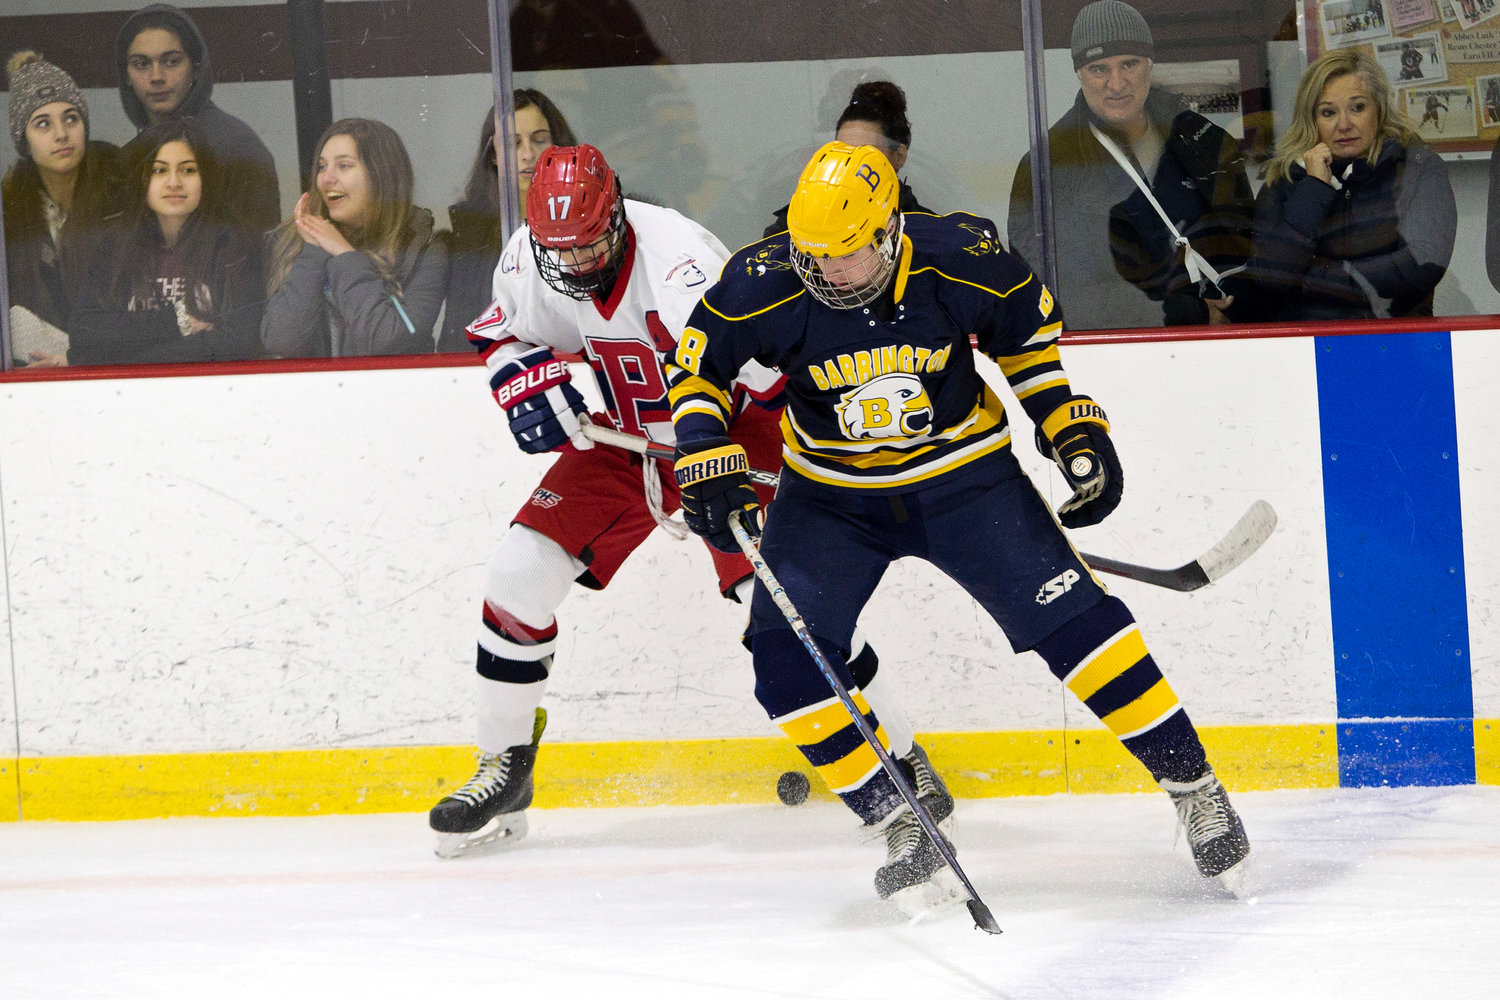 Barrington's Andrew Harris battles a Portsmouth opponent for possession of the puck.